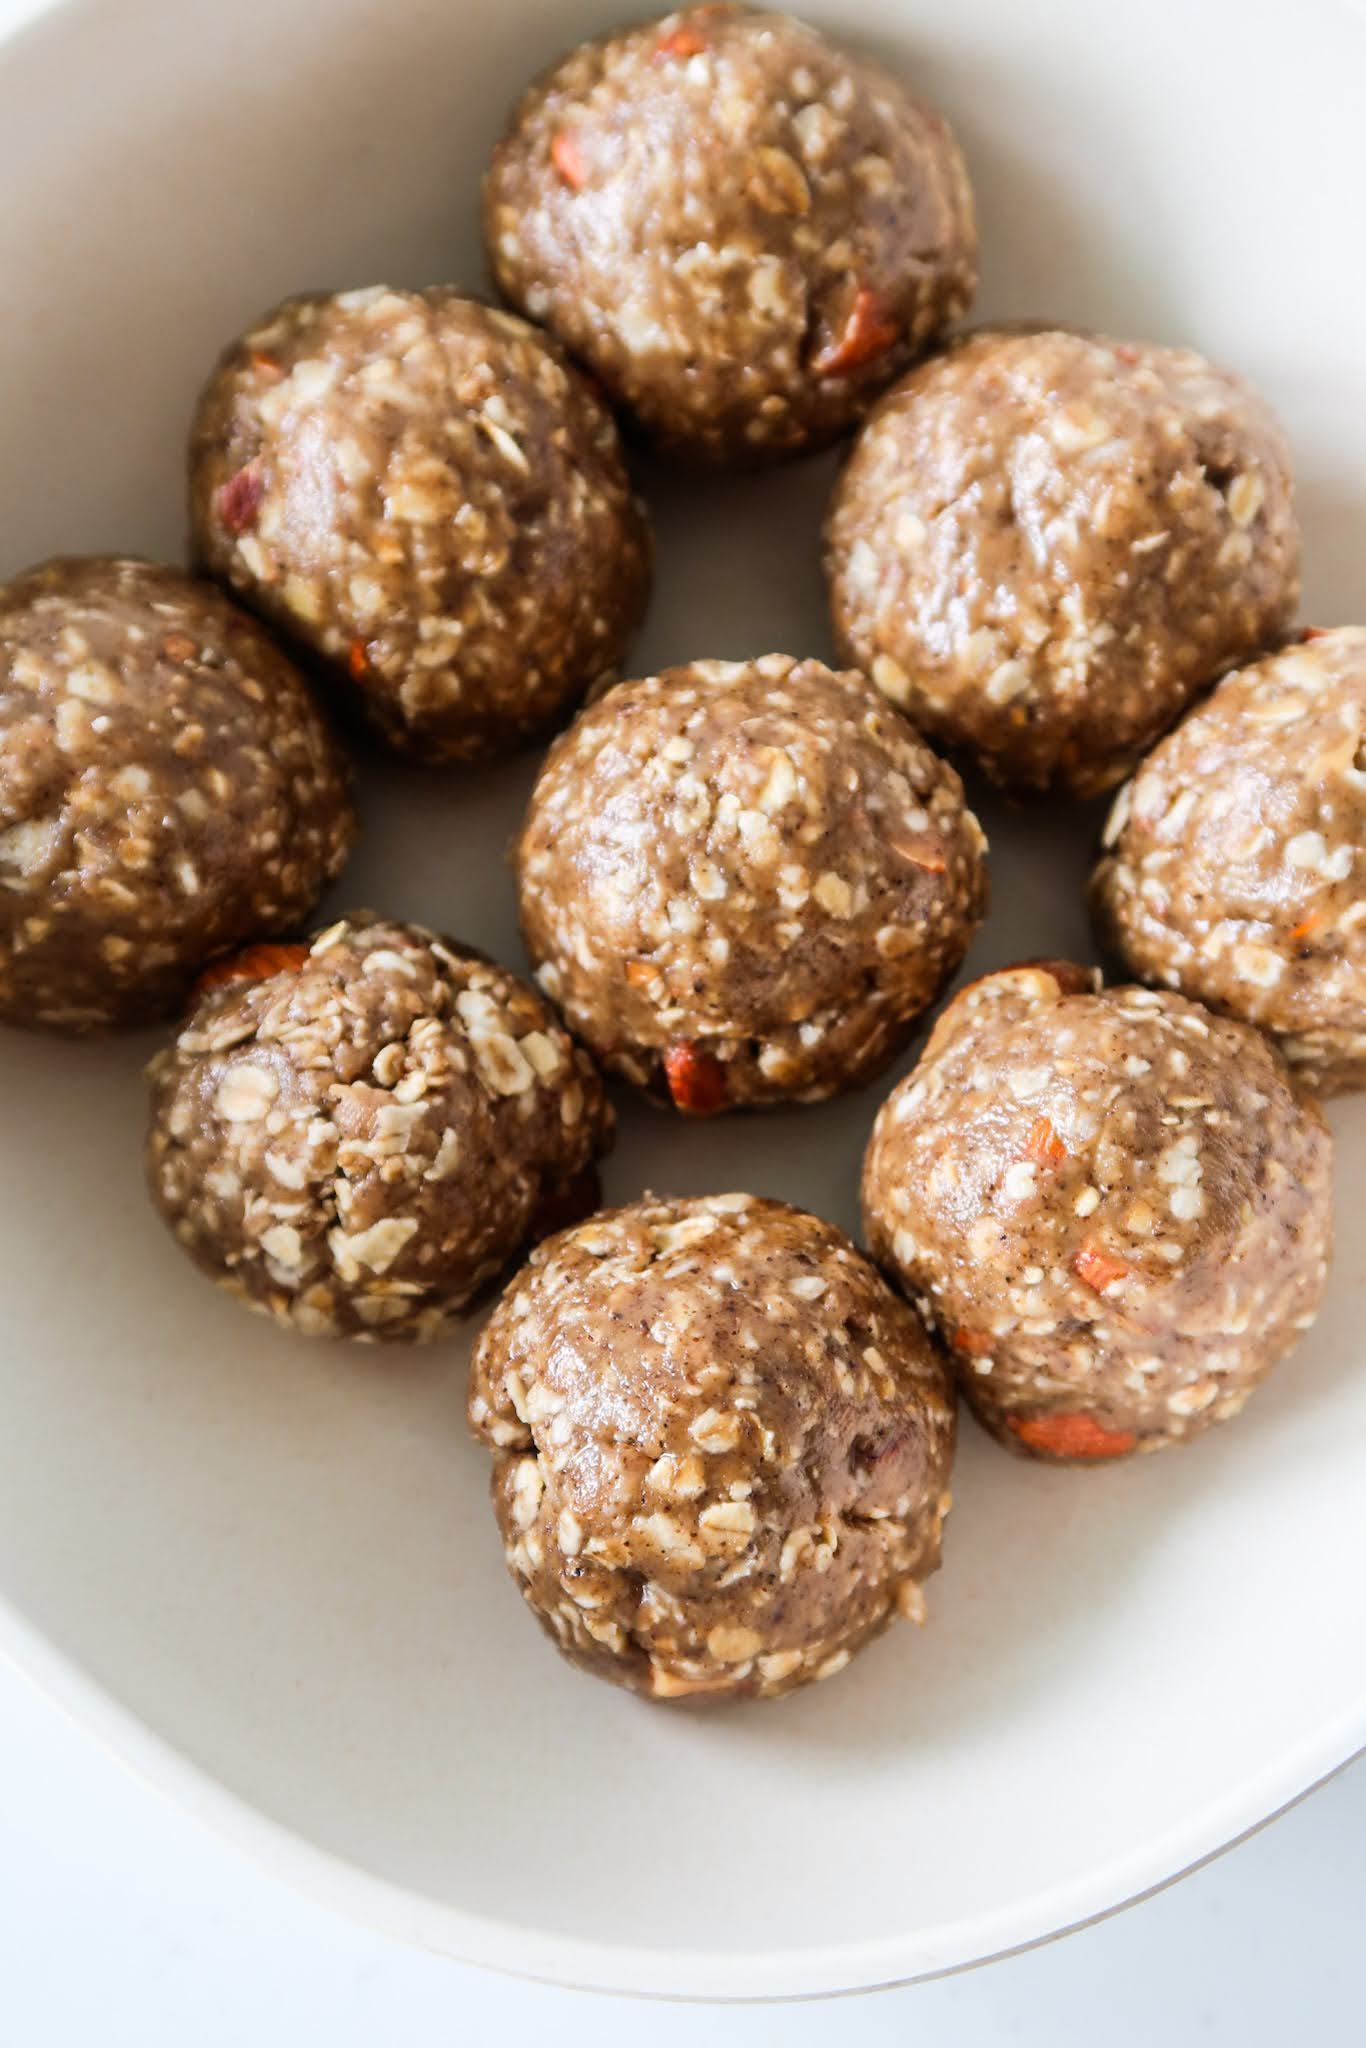 Better than granola bars: these healthy granola balls are delicious and a quick and easy breakfast idea that is gluten-free and dairy free. Also a great healthy snack!